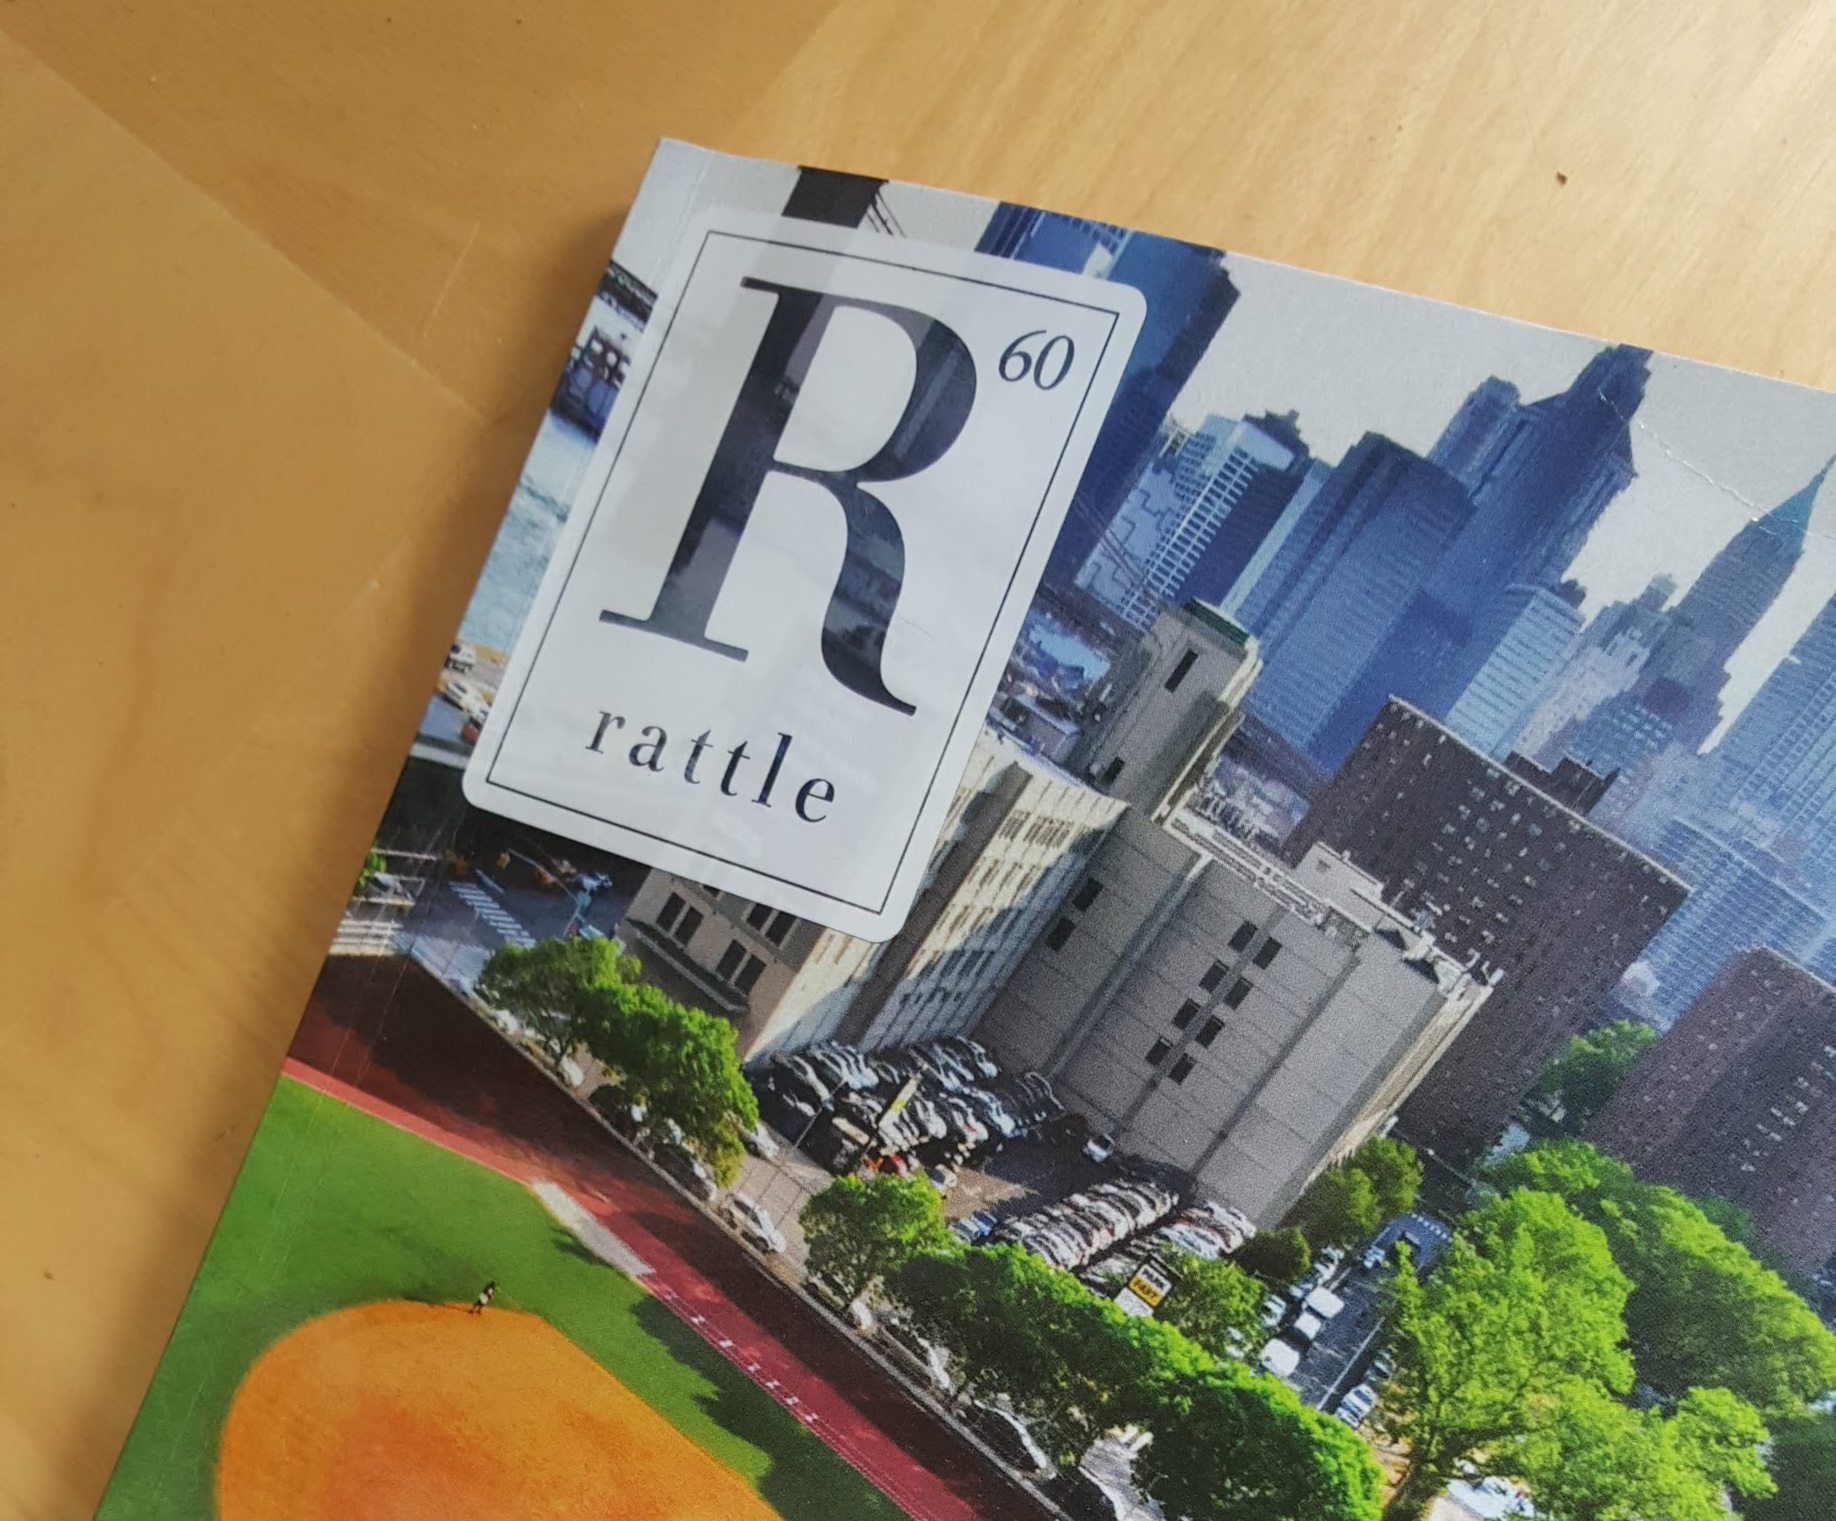 Rattle poetry magazine